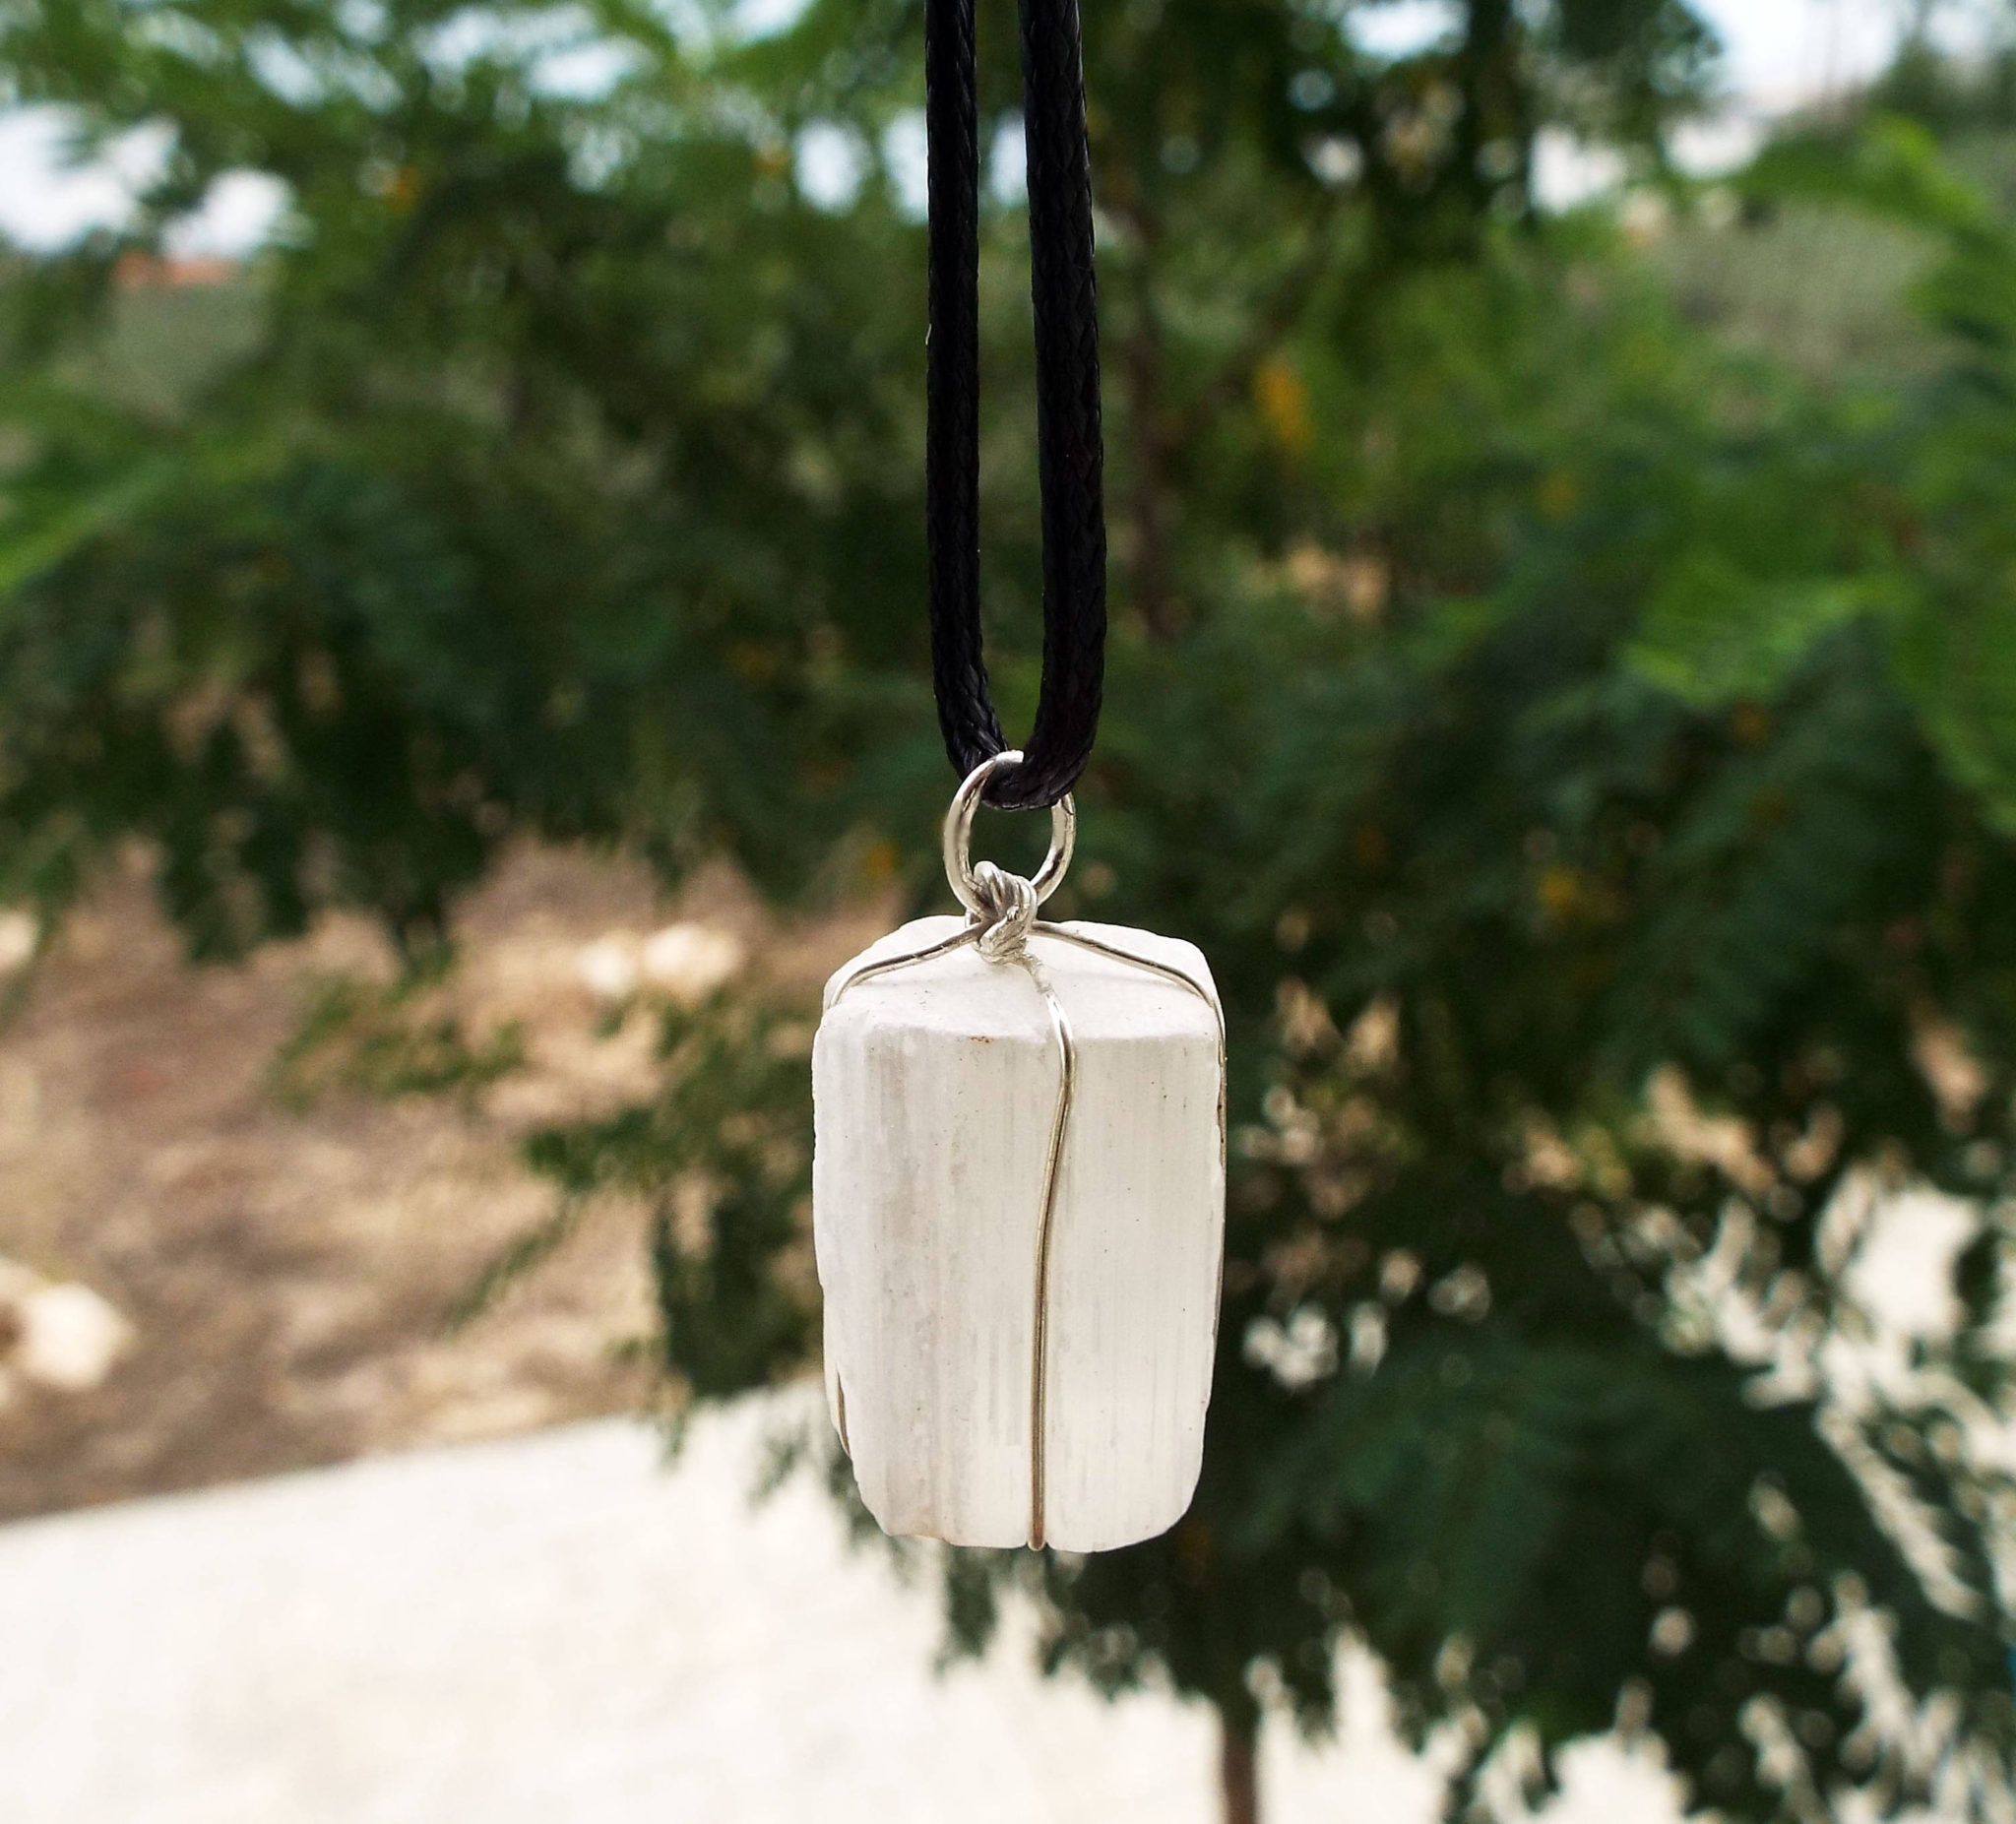 Selenite Pendant Gemstone Silver Rough Crystal Sterling 925 Handmade Necklace Natural Faceted  Jewelry